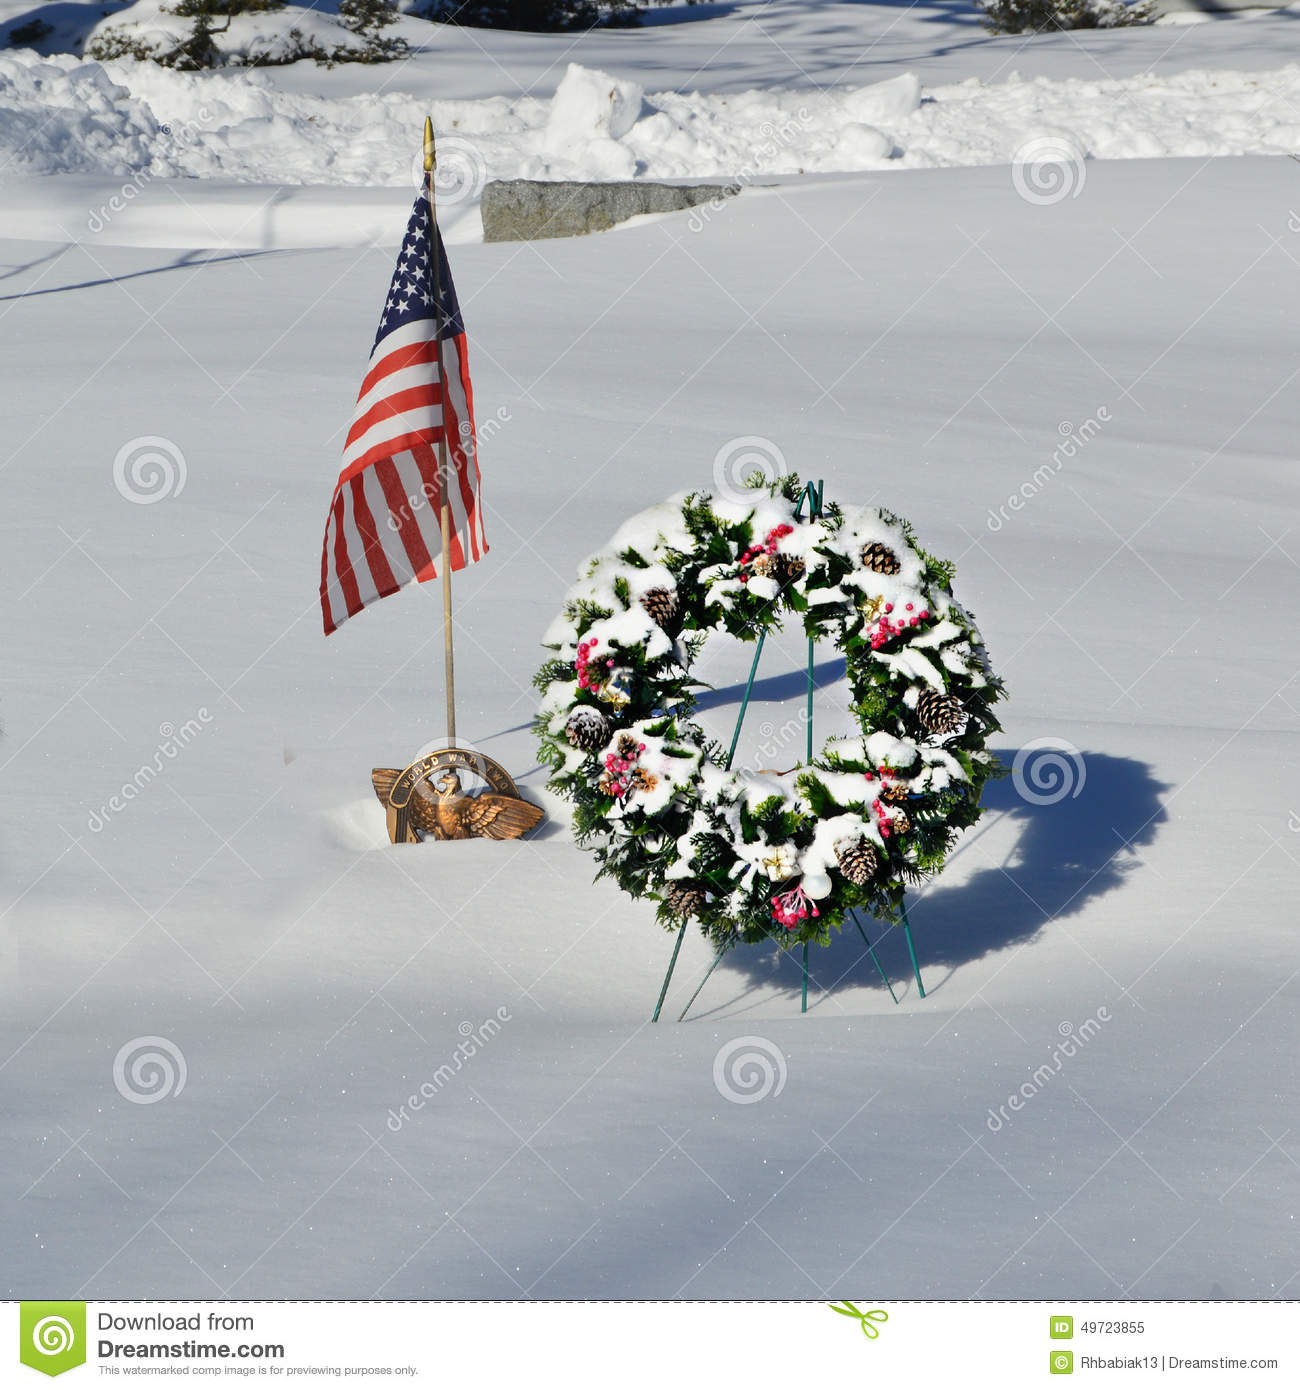 Snow Covered Christmas Wreath with American Flag